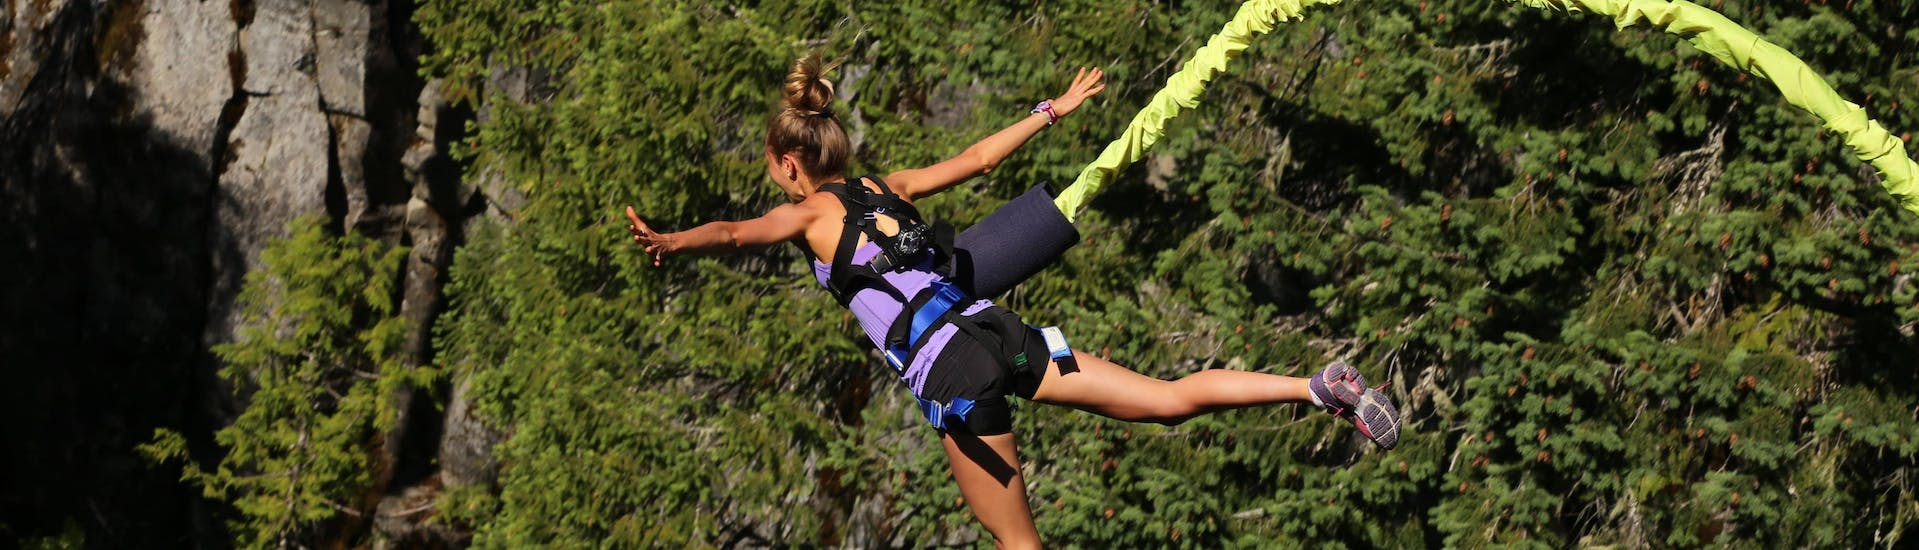 A young woman bungee jumping close to the bungee jumping hotspot of Luz-Saint-Sauveur.